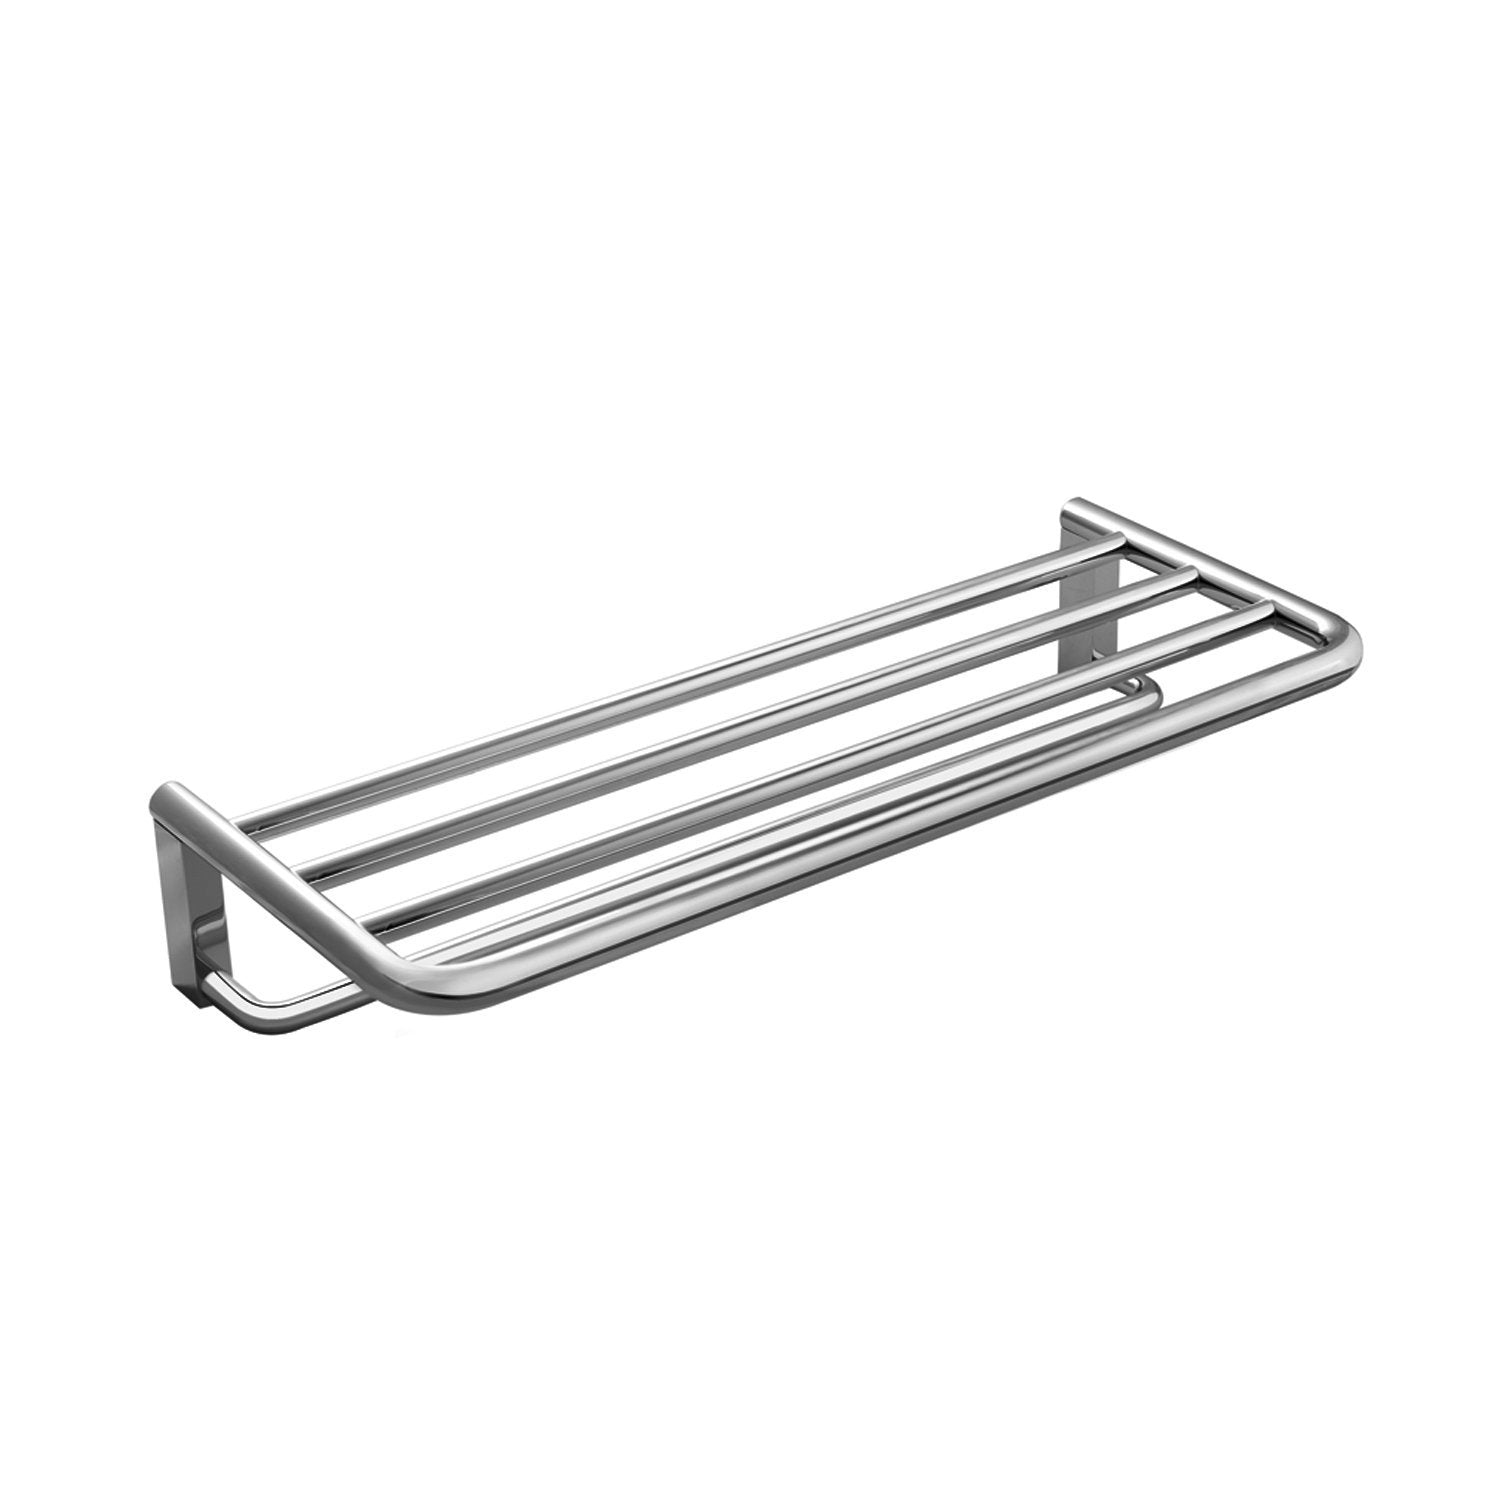 COSMIC Project  Towel Rack with Shelf, Wall Mount, Brass Body, Chrome Finish, 23-5/8 x 4-5/16 x 9-13/16 Inches (2510168)